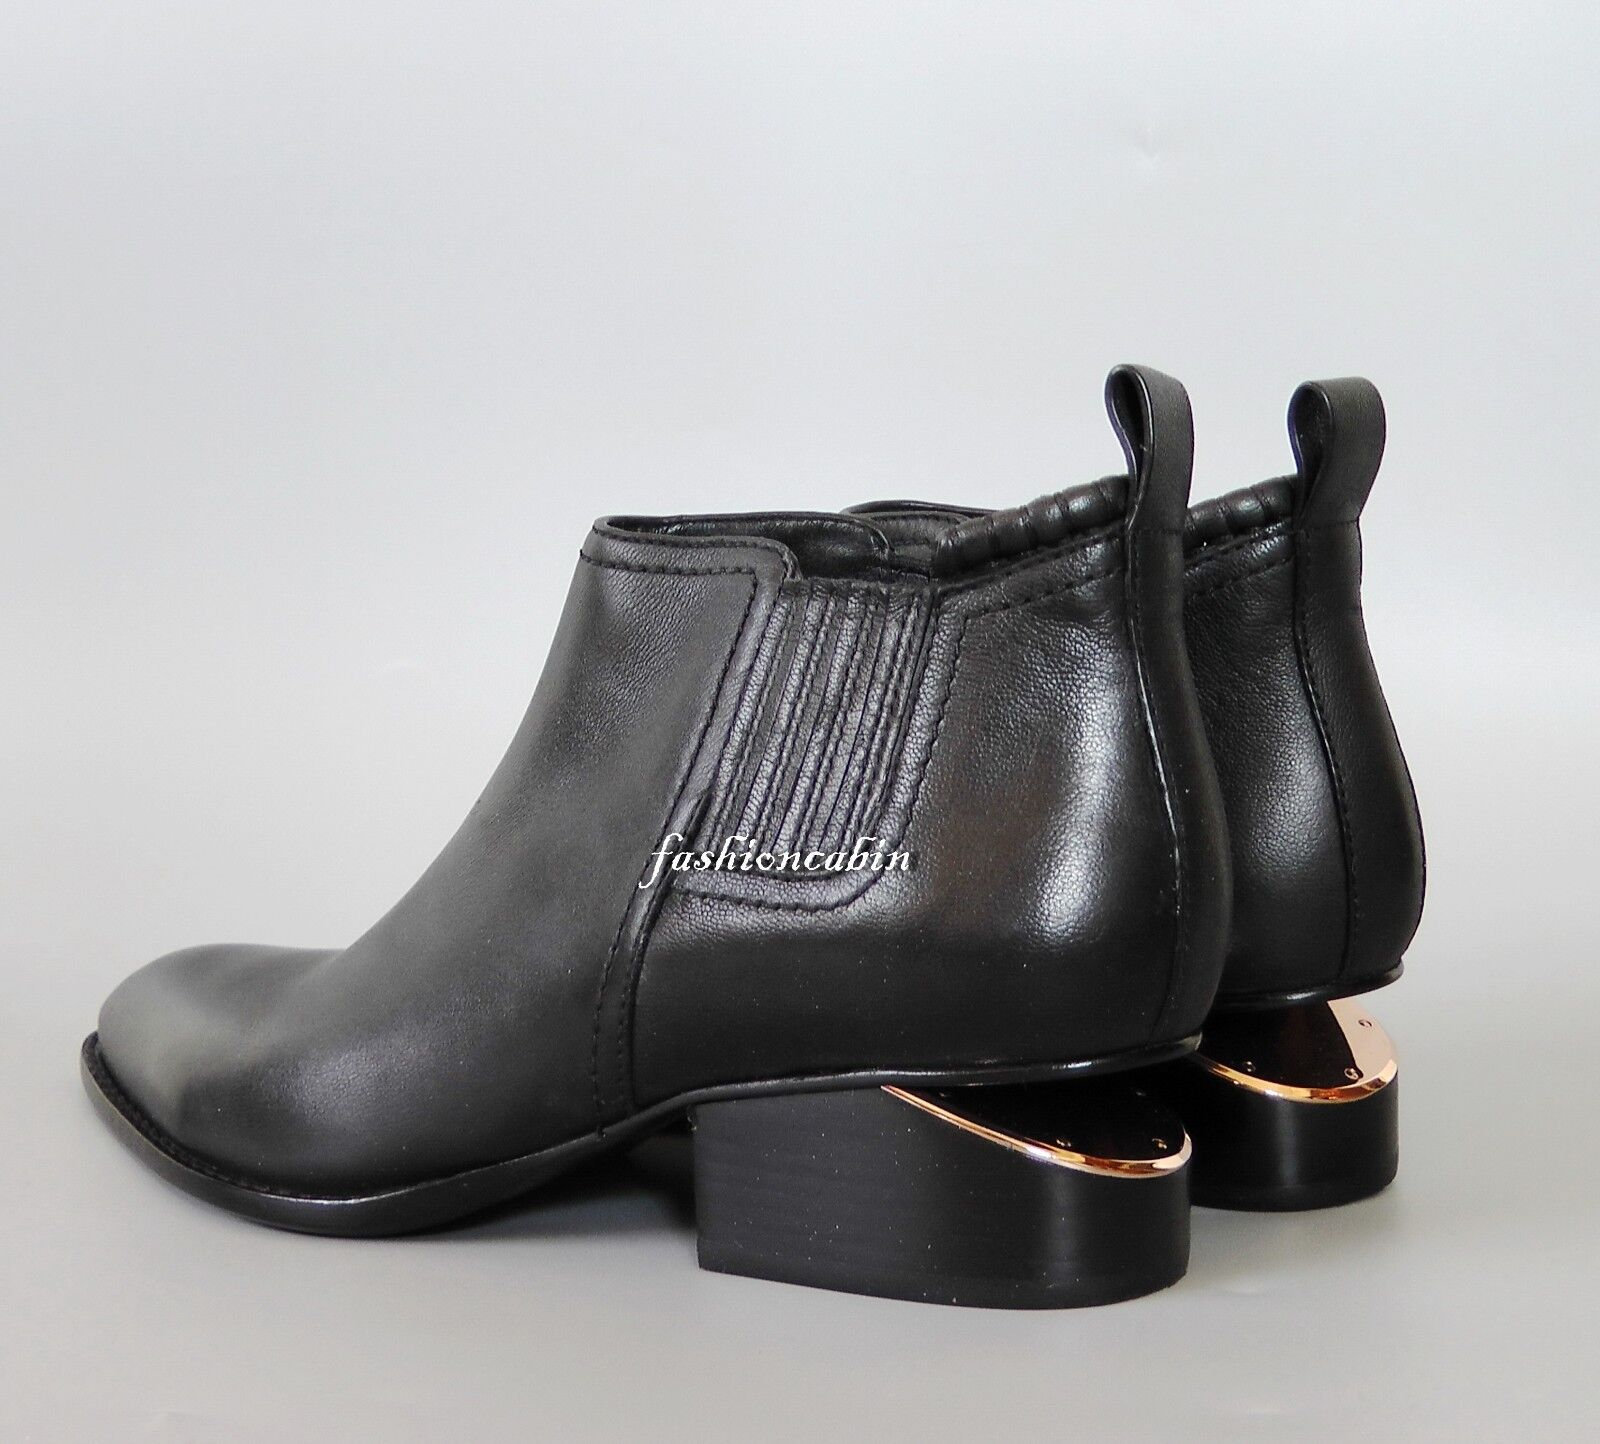 NEW ALEXANDER WANG Kori Cut Out Heel Ankle Bootie shoes, EUR 39.5, Black Leather